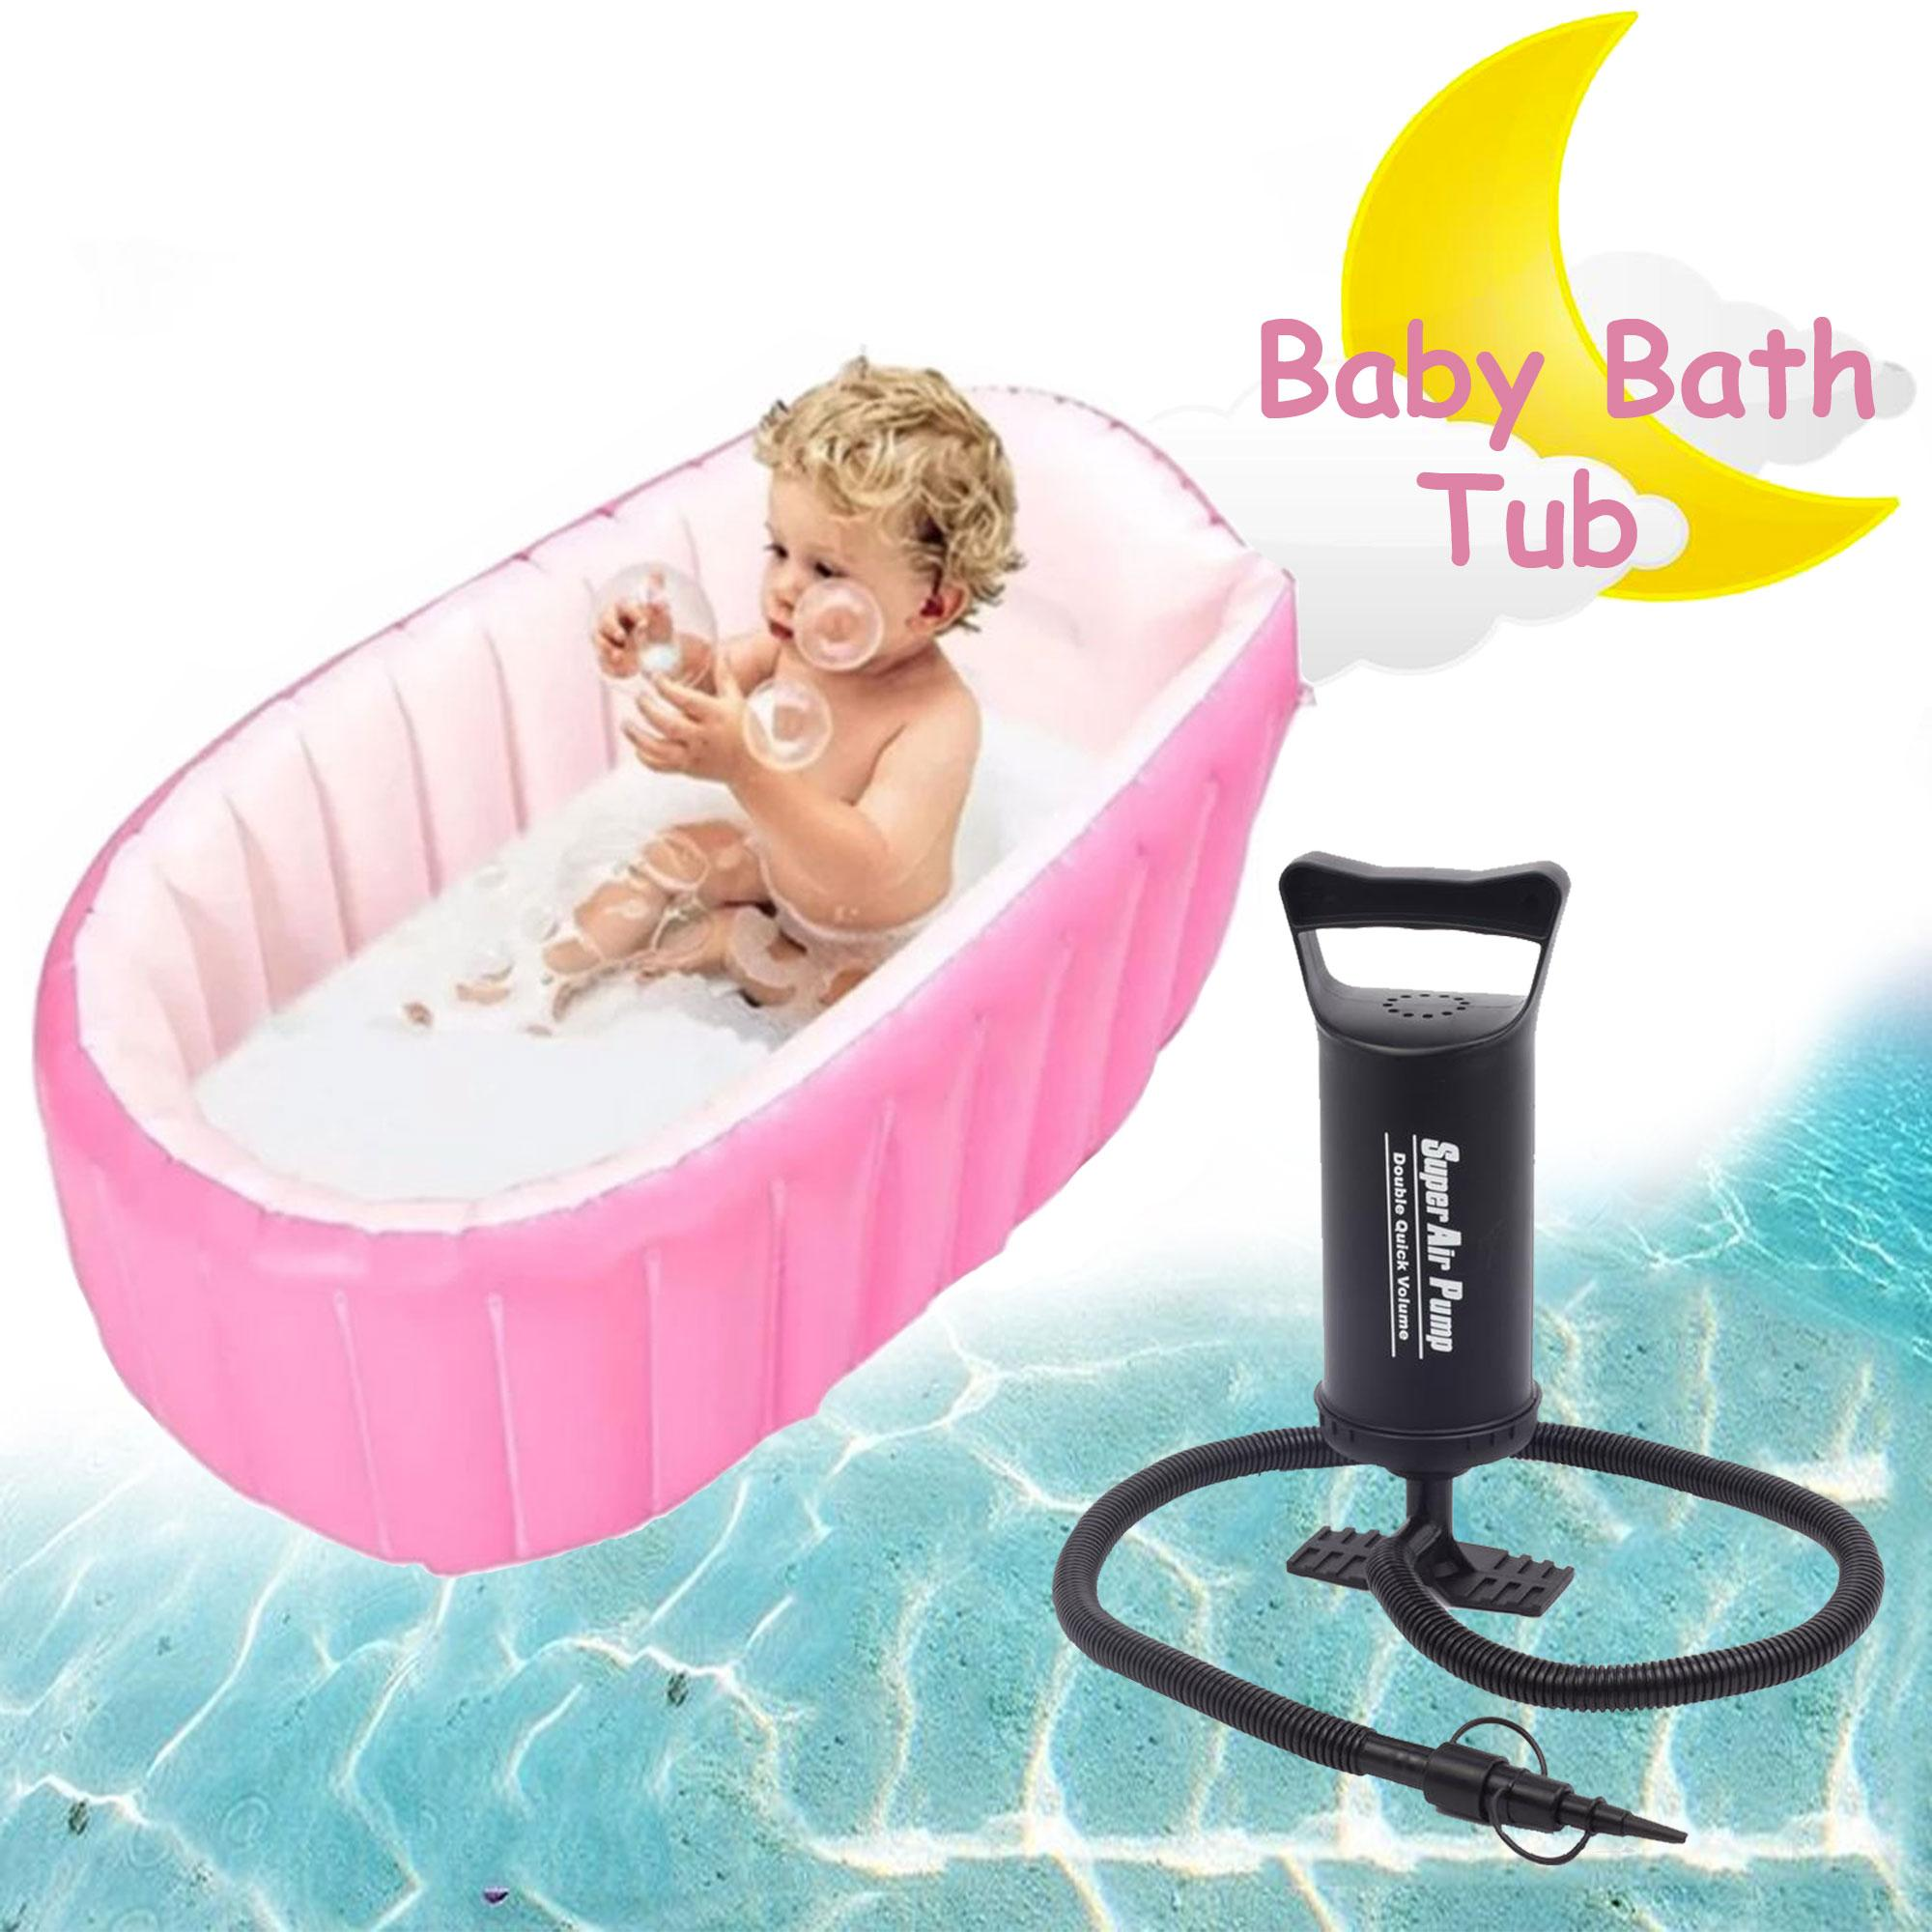 Yt-226a Inflatable Baby Bath Tub (pink) With Free Hs-112 Two-Way Super Air Pump (black) By Gonzalez General Merchandise.